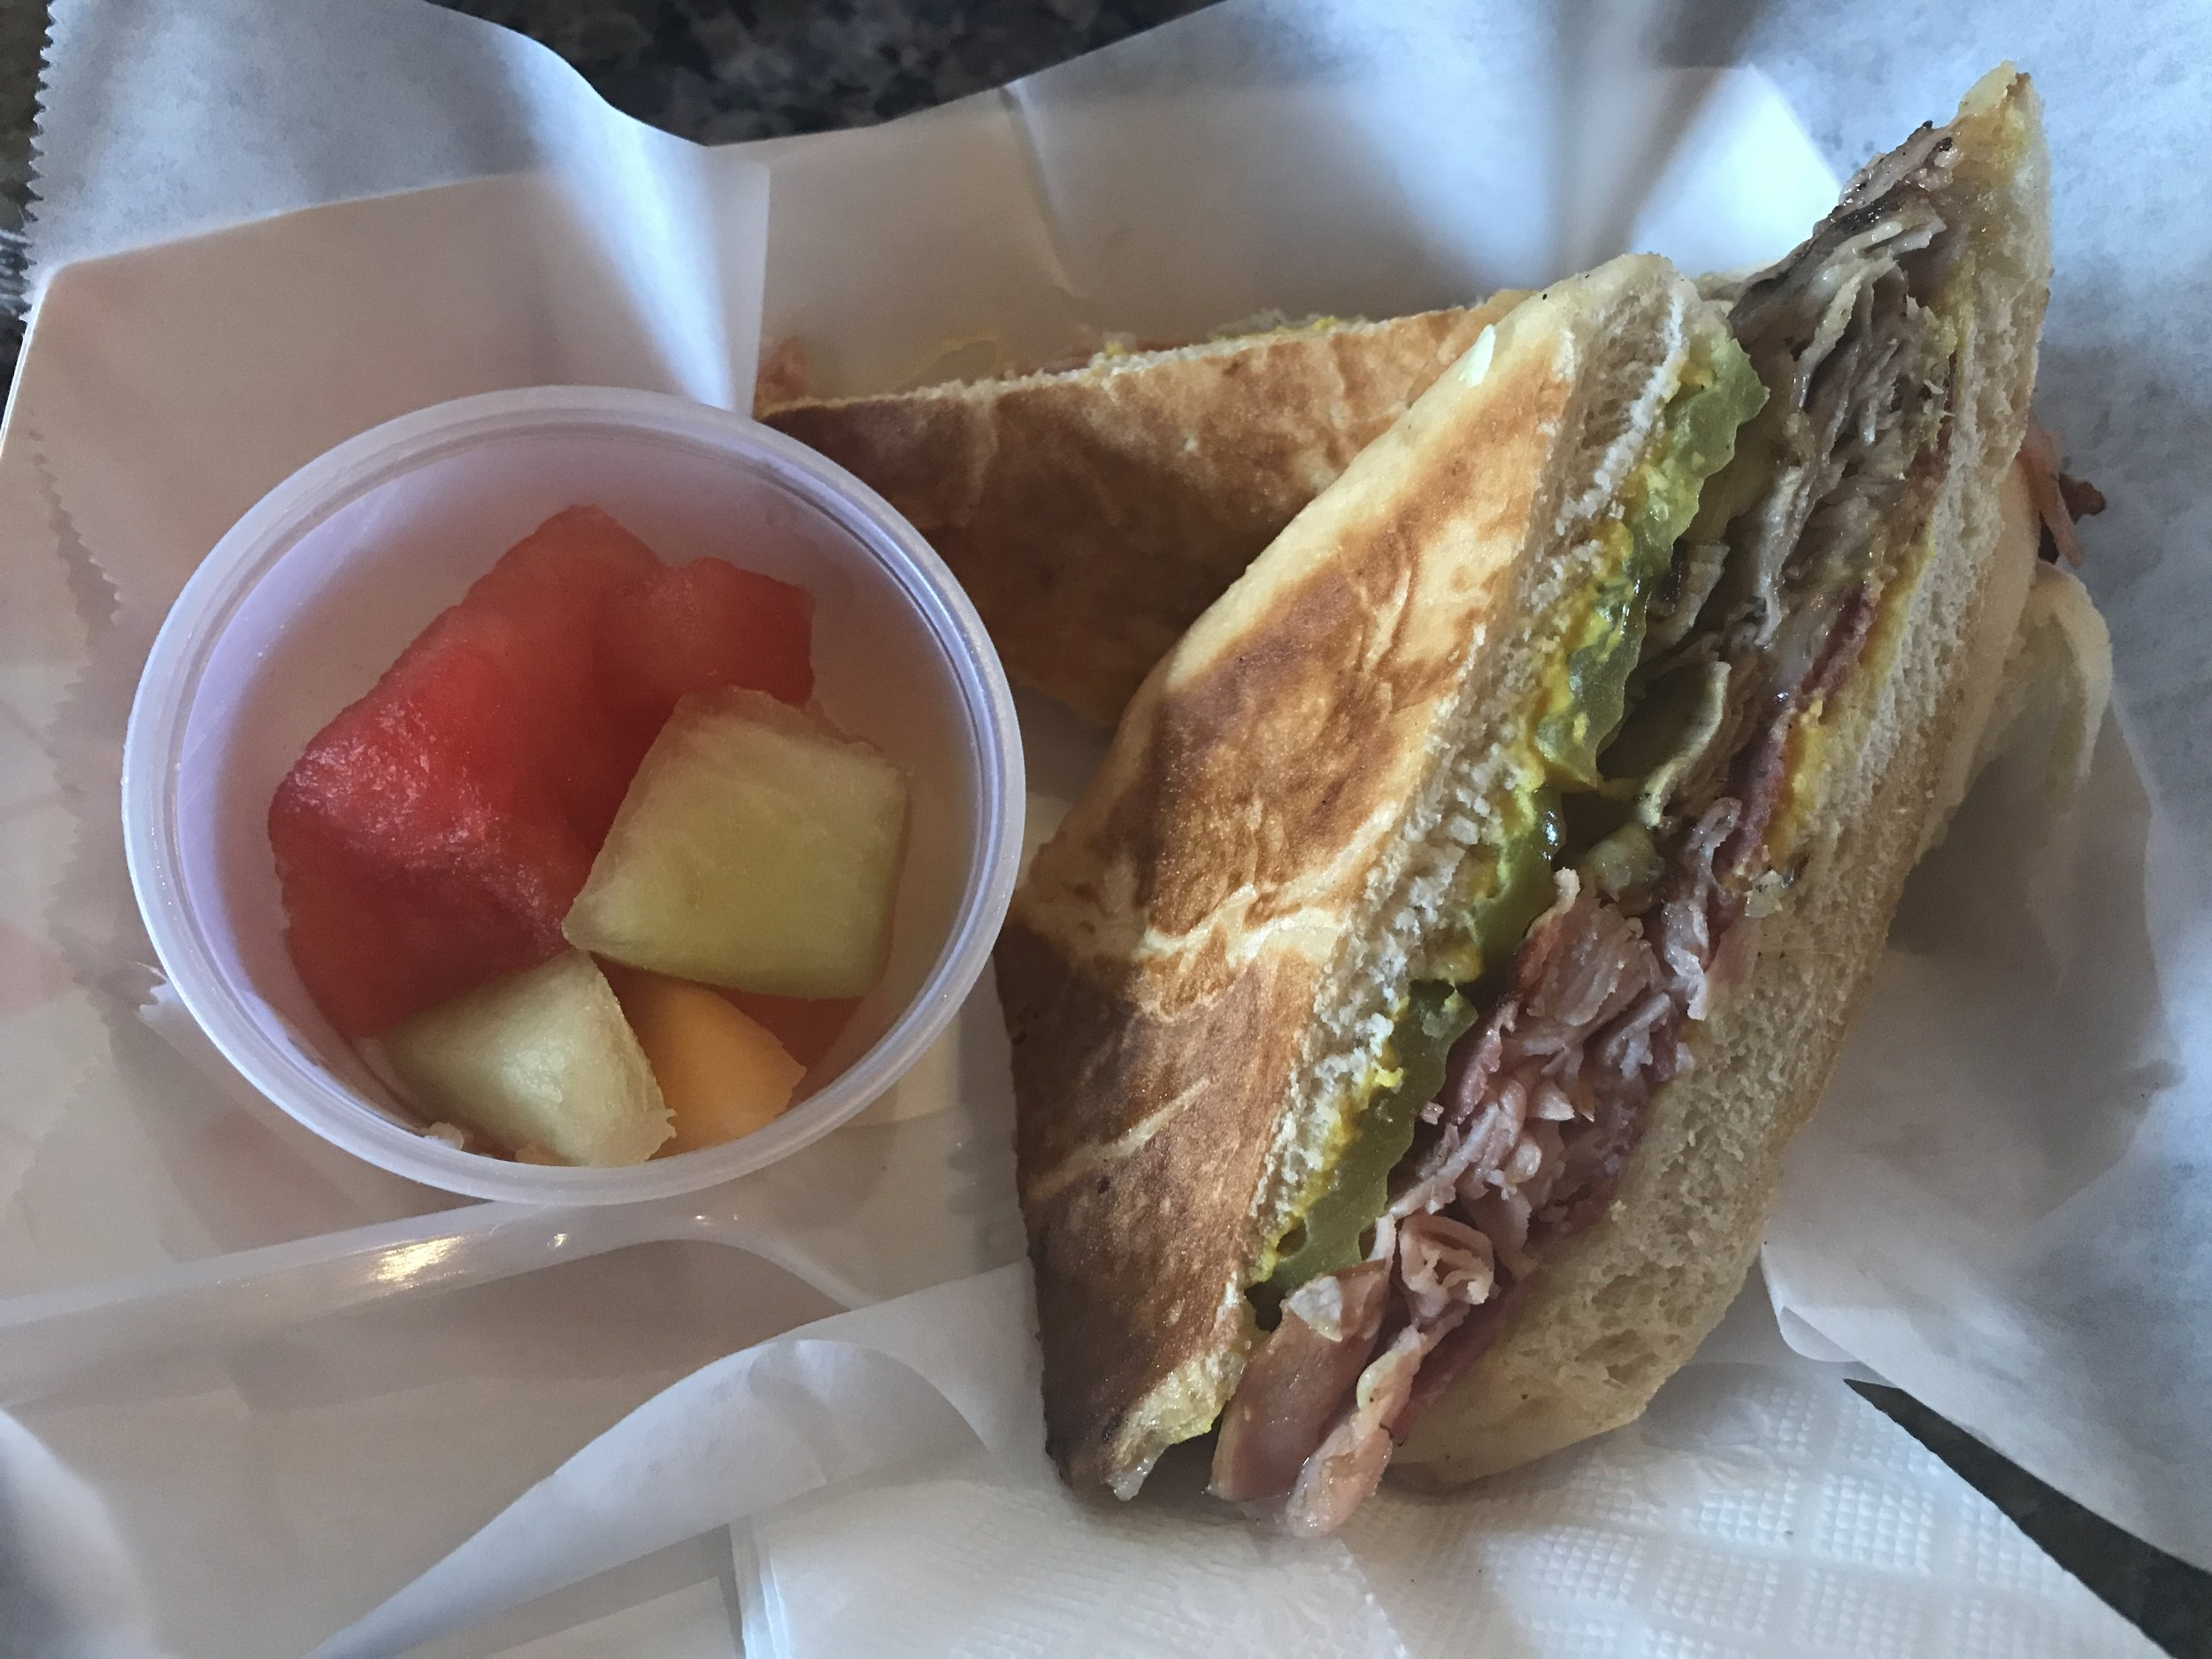 Mike's sandwich from Cafe Ybor